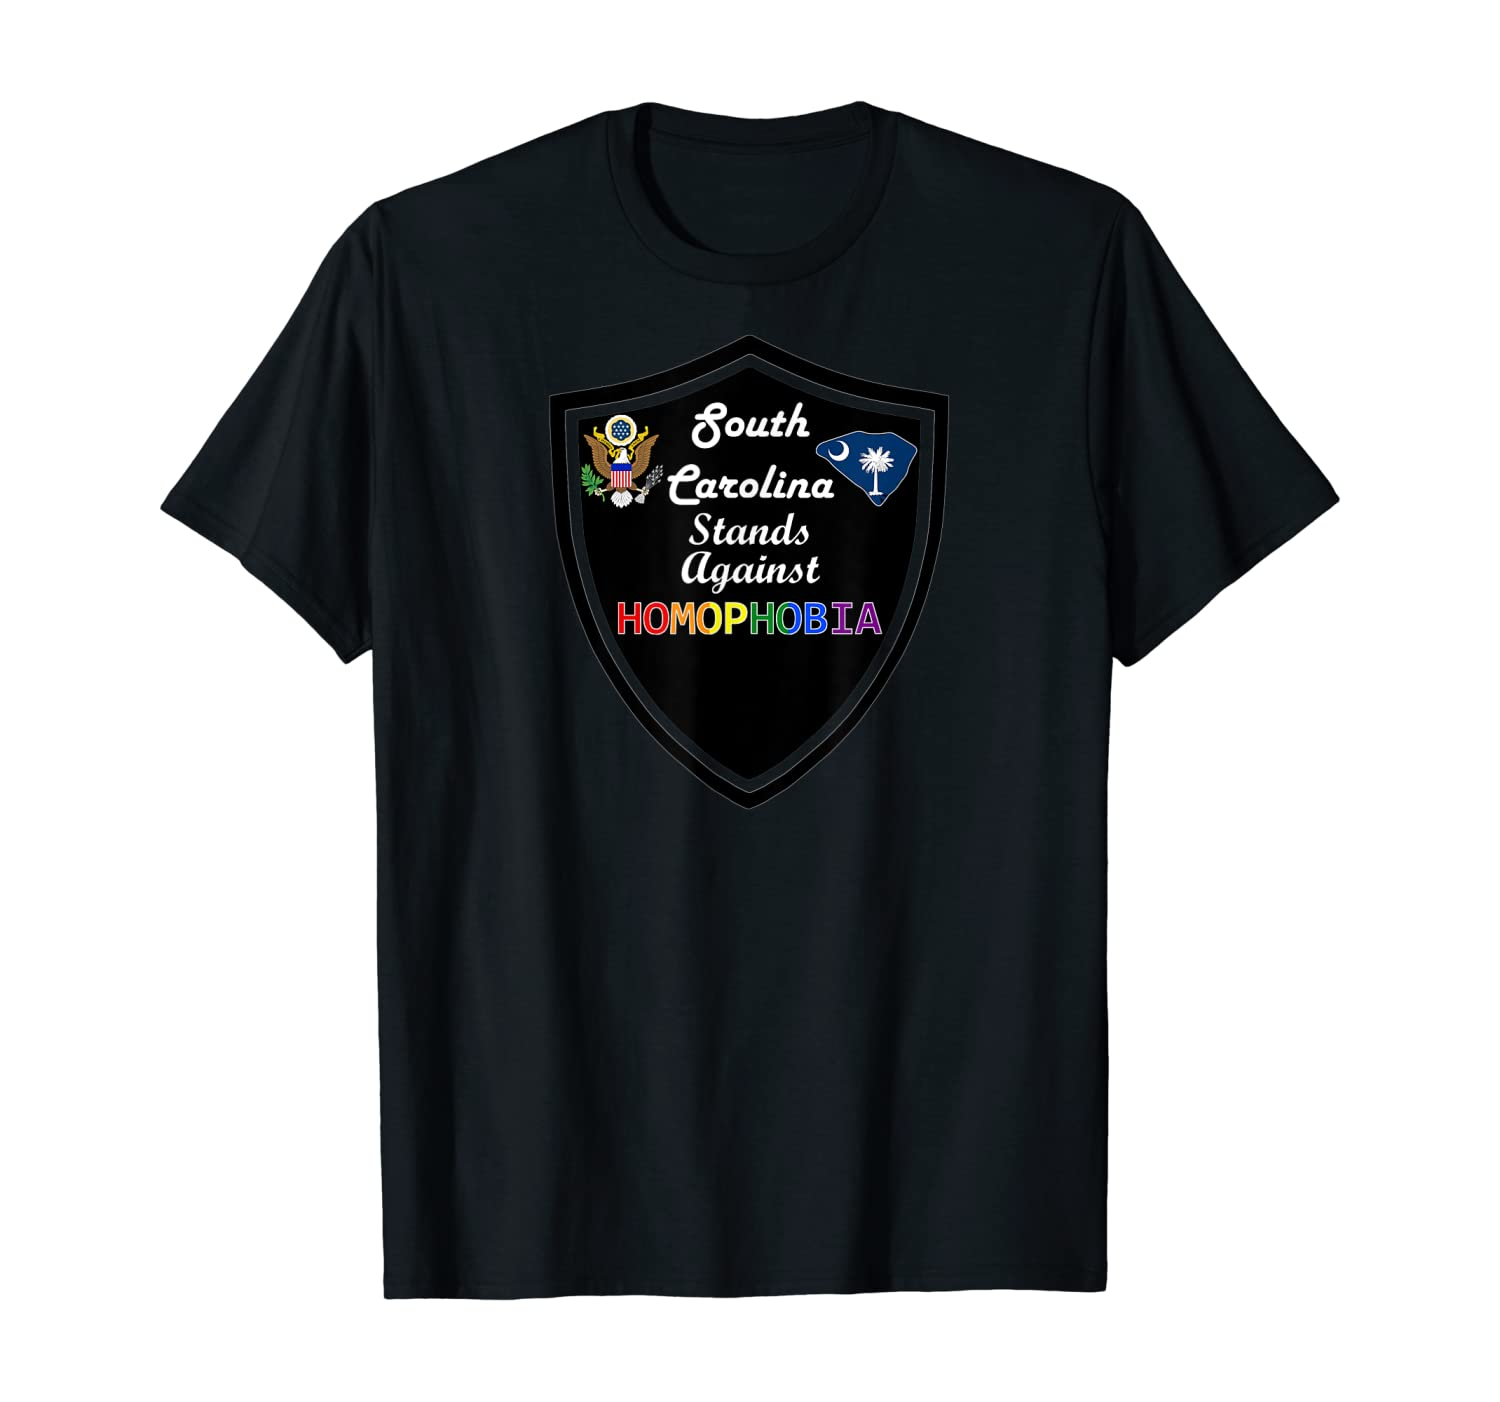 South Carolina Stands Against Homophobia Lgbt Rights Shirts